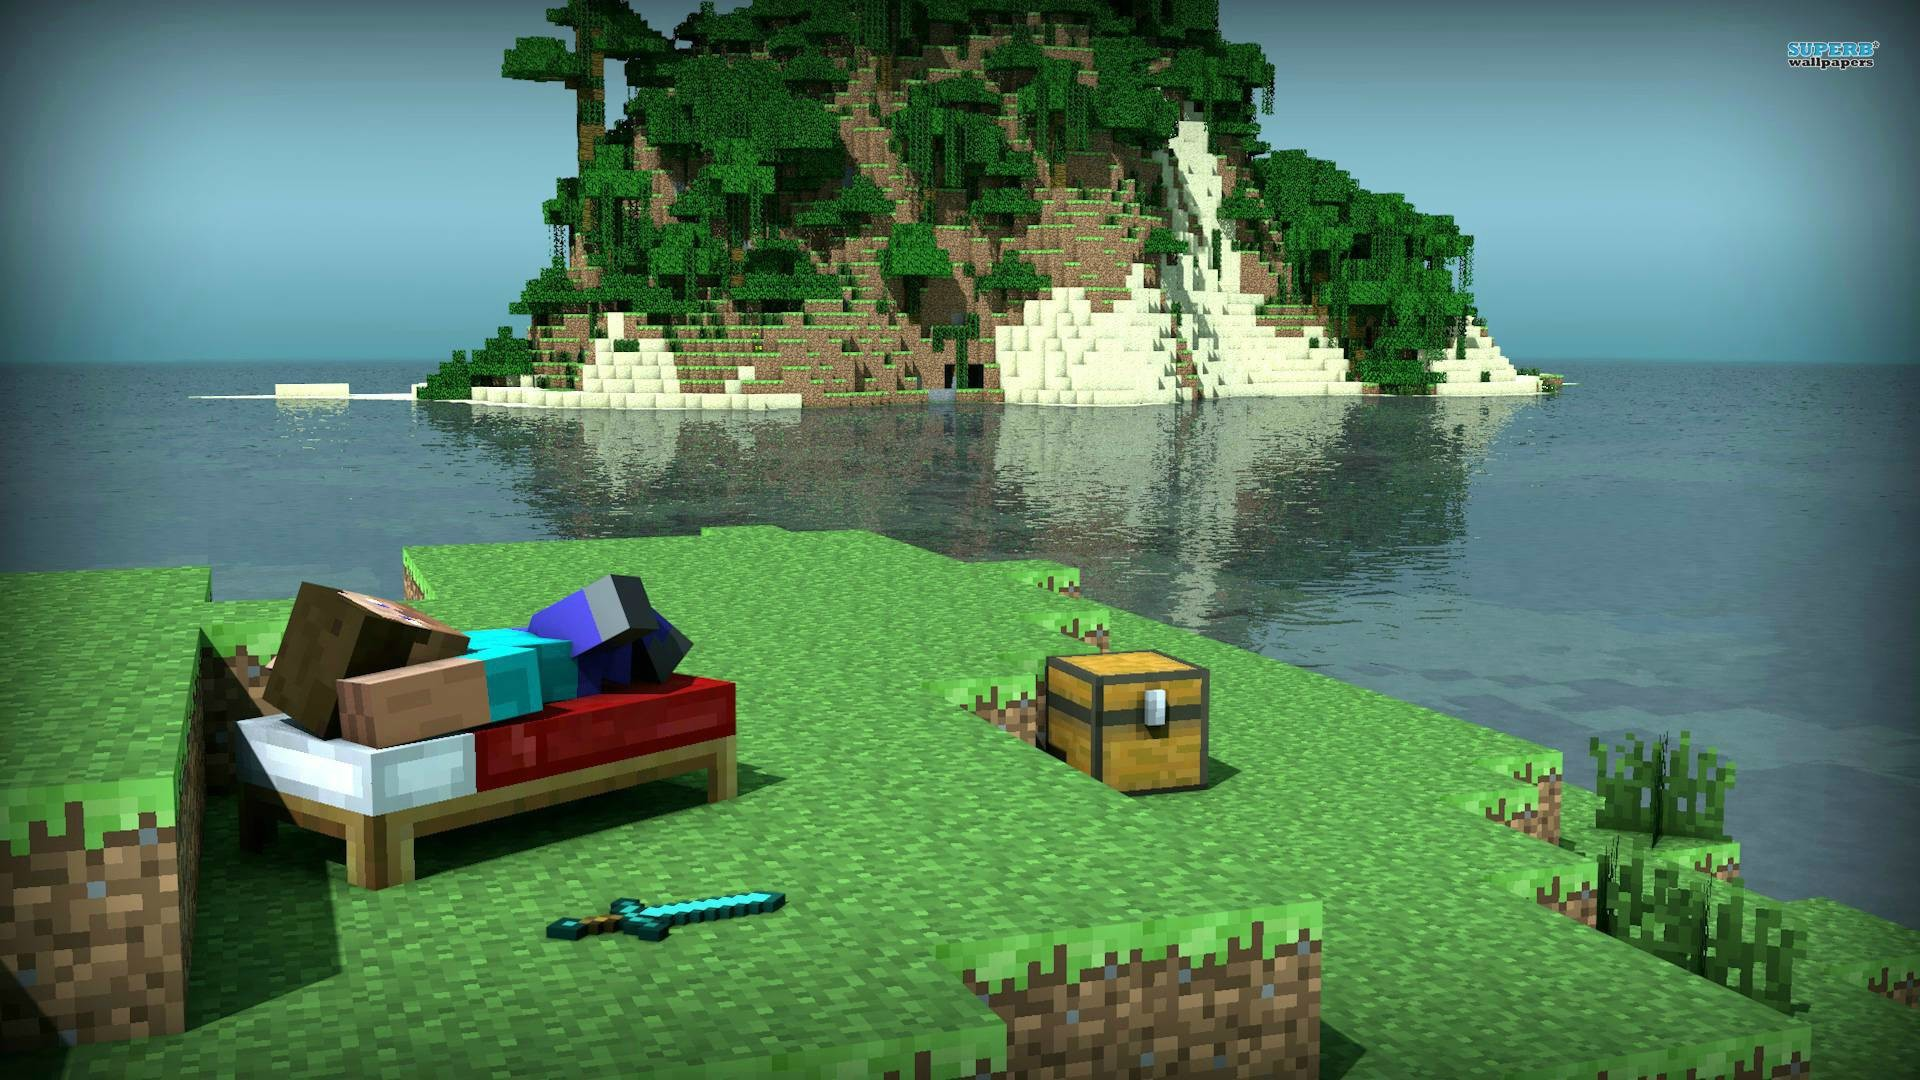 Res: 1920x1080, Minecraft HD, Desktop Screen Wallpapers, Wallpapers and Pictures BackGrounds  Collection for PC & Mac, Laptop, Tablet, ...